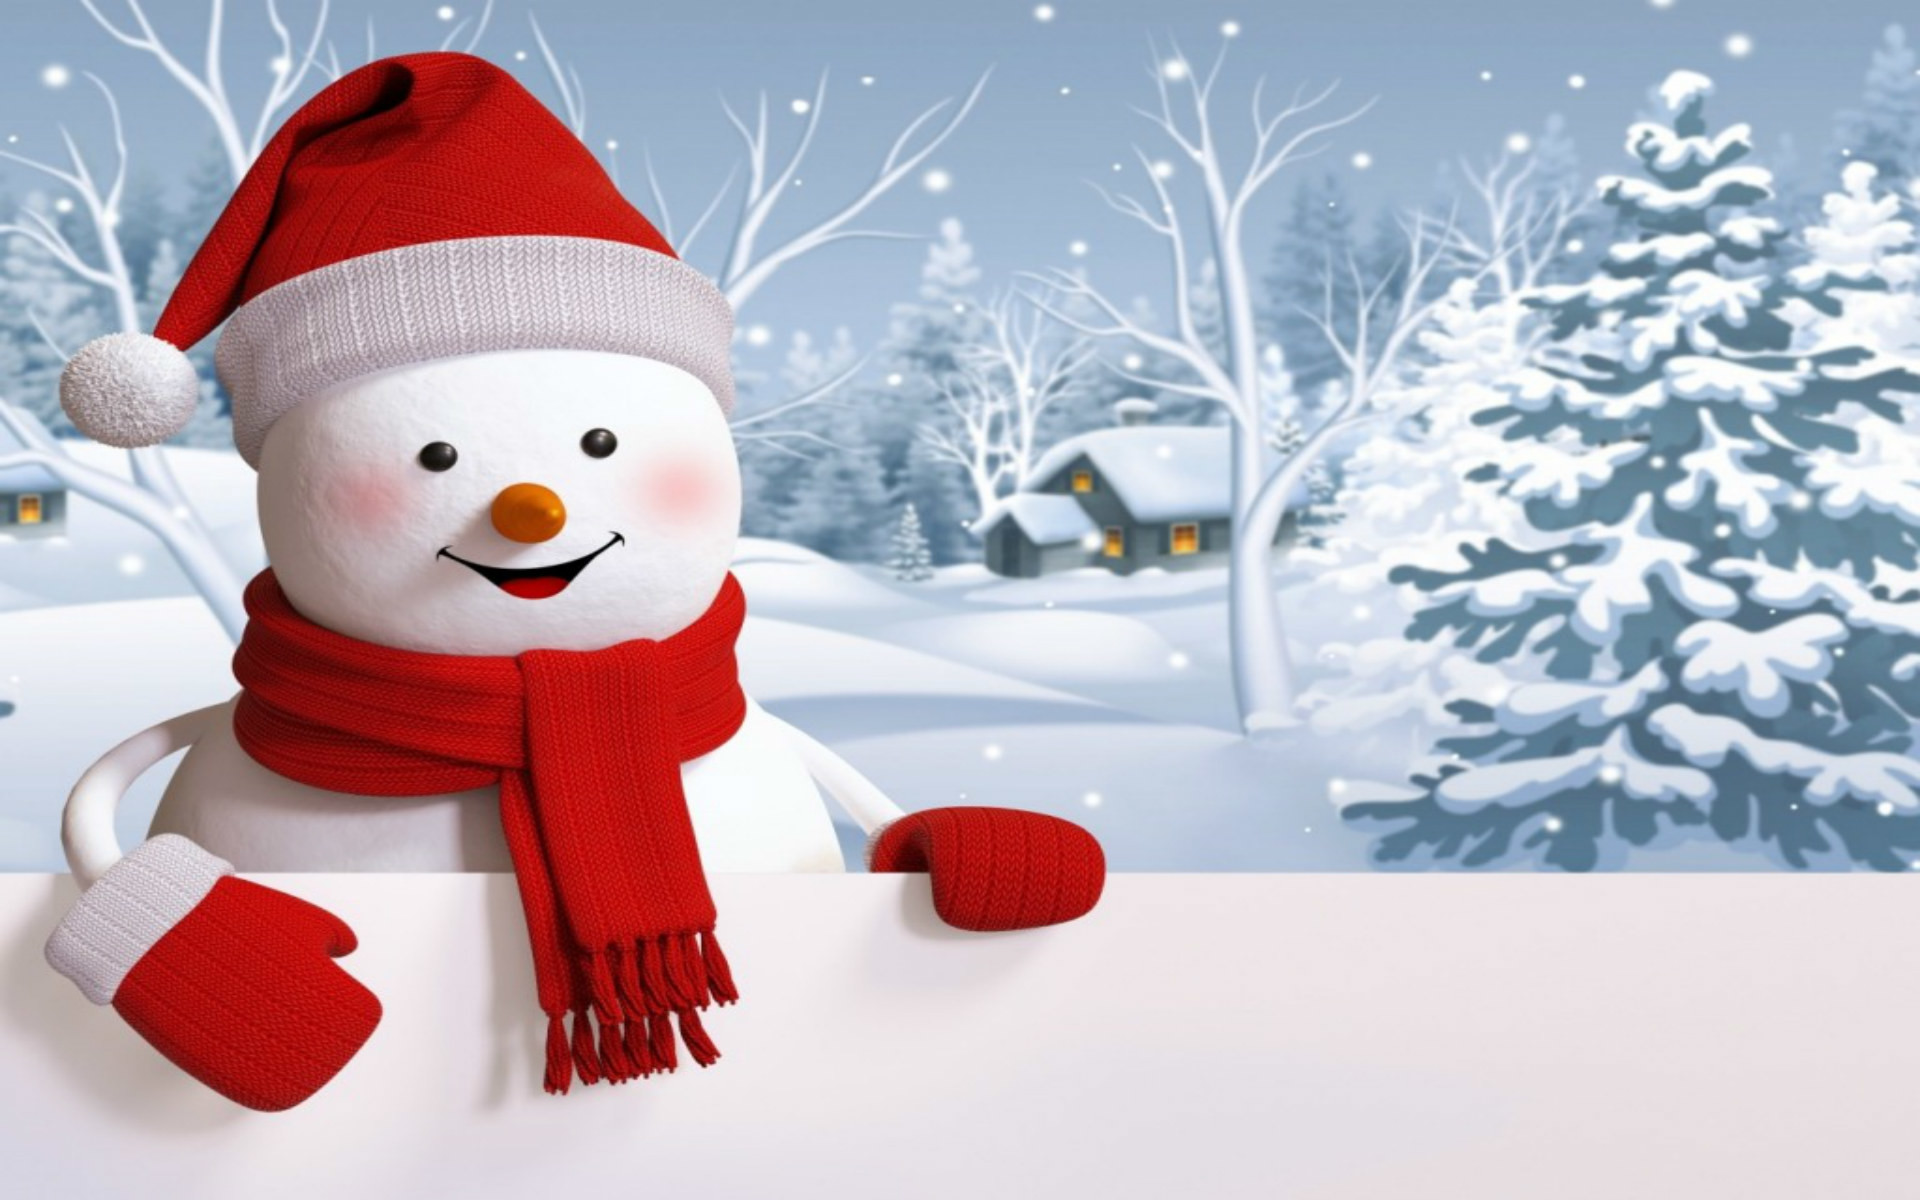 1920x1080 Wallpapers For Frosty The Snowman Wallpaper Desktop